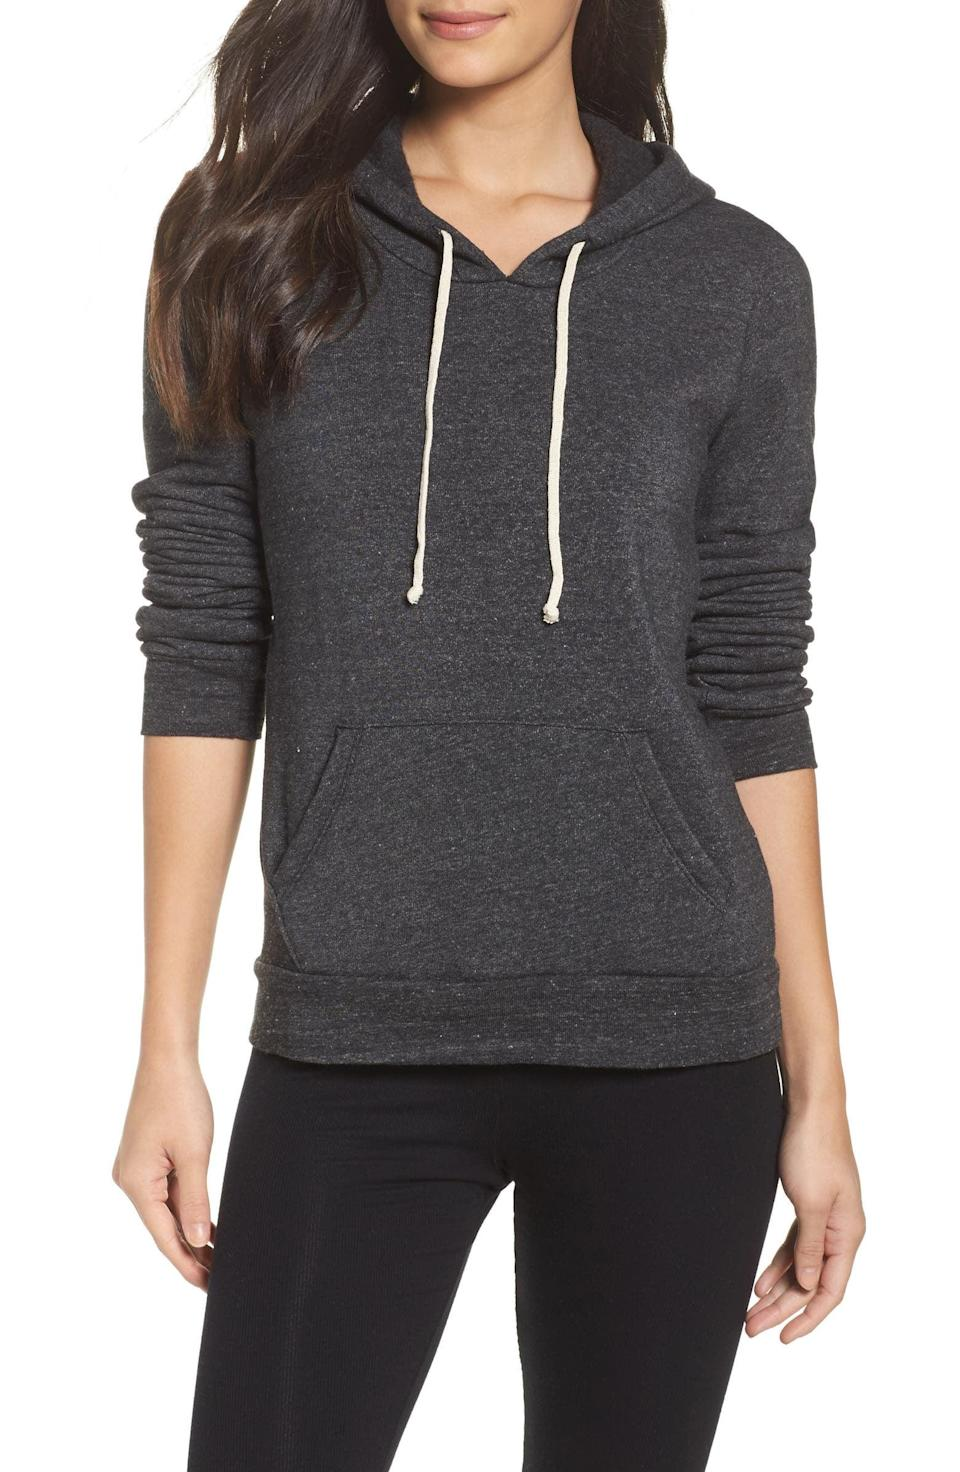 <p>You can't go wrong with a reliable hoodie you know they'll use all the time. The <span>Alternative Athletics Pullover Hoodie</span> ($54) is ultra-soft and cozy with a kangaroo pocket and draw string hood. It comes in a variety of colors including black, rose quartz, and grey.</p>